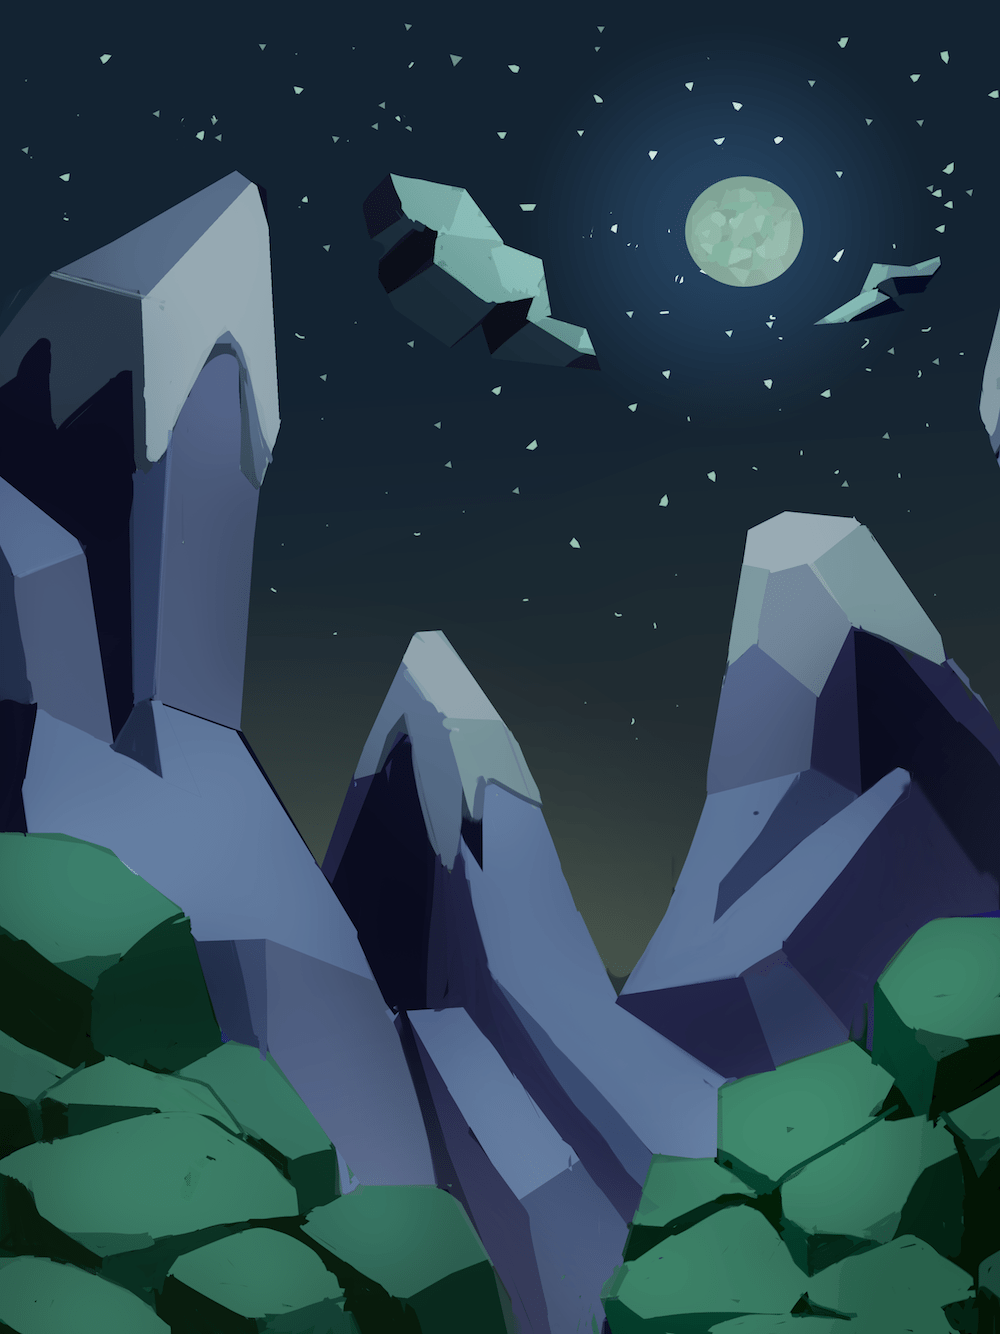 Low Poly Inspired Landscape Painting by Mourphine via ArtCorgi